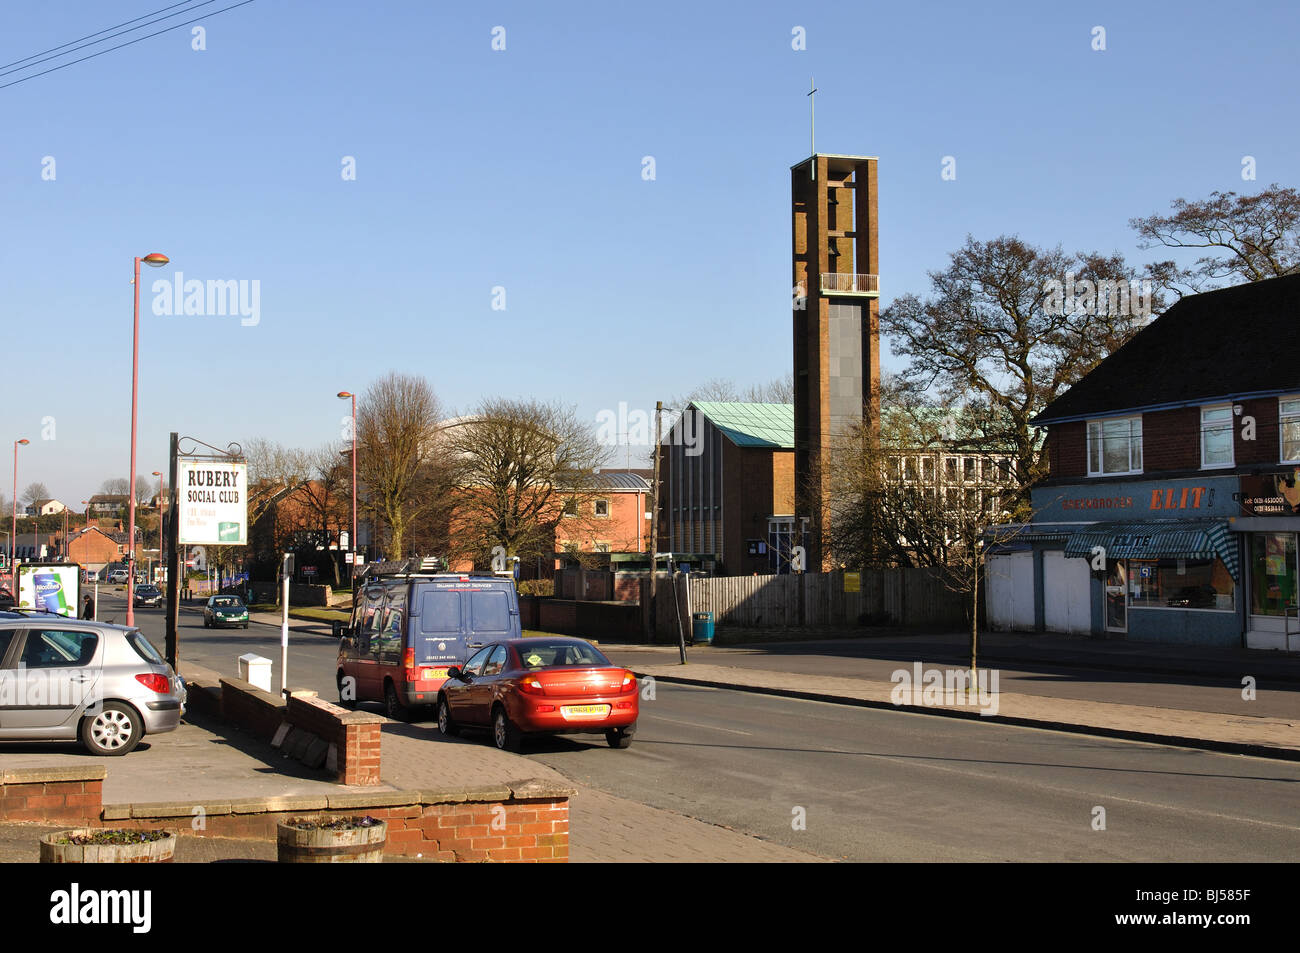 New Road and St. Chad`s Church, Rubery, Worcestershire, England, UK - Stock Image